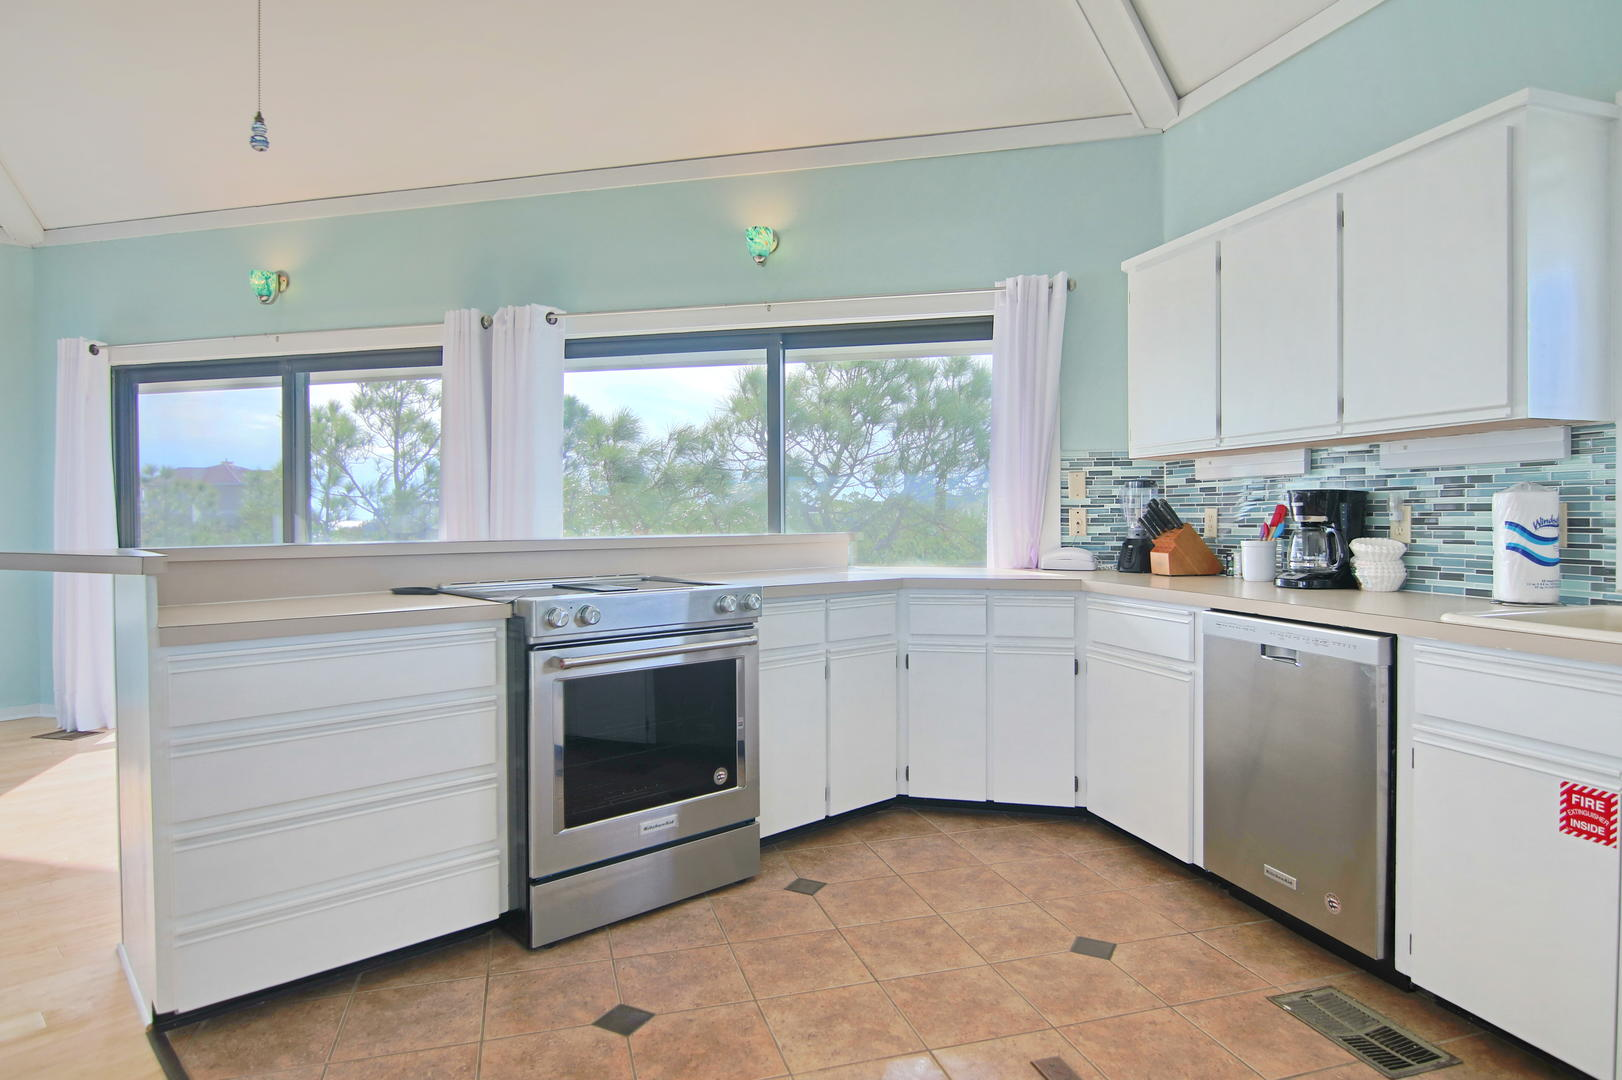 Making meals is a breeze in this fully equipped kitchen.